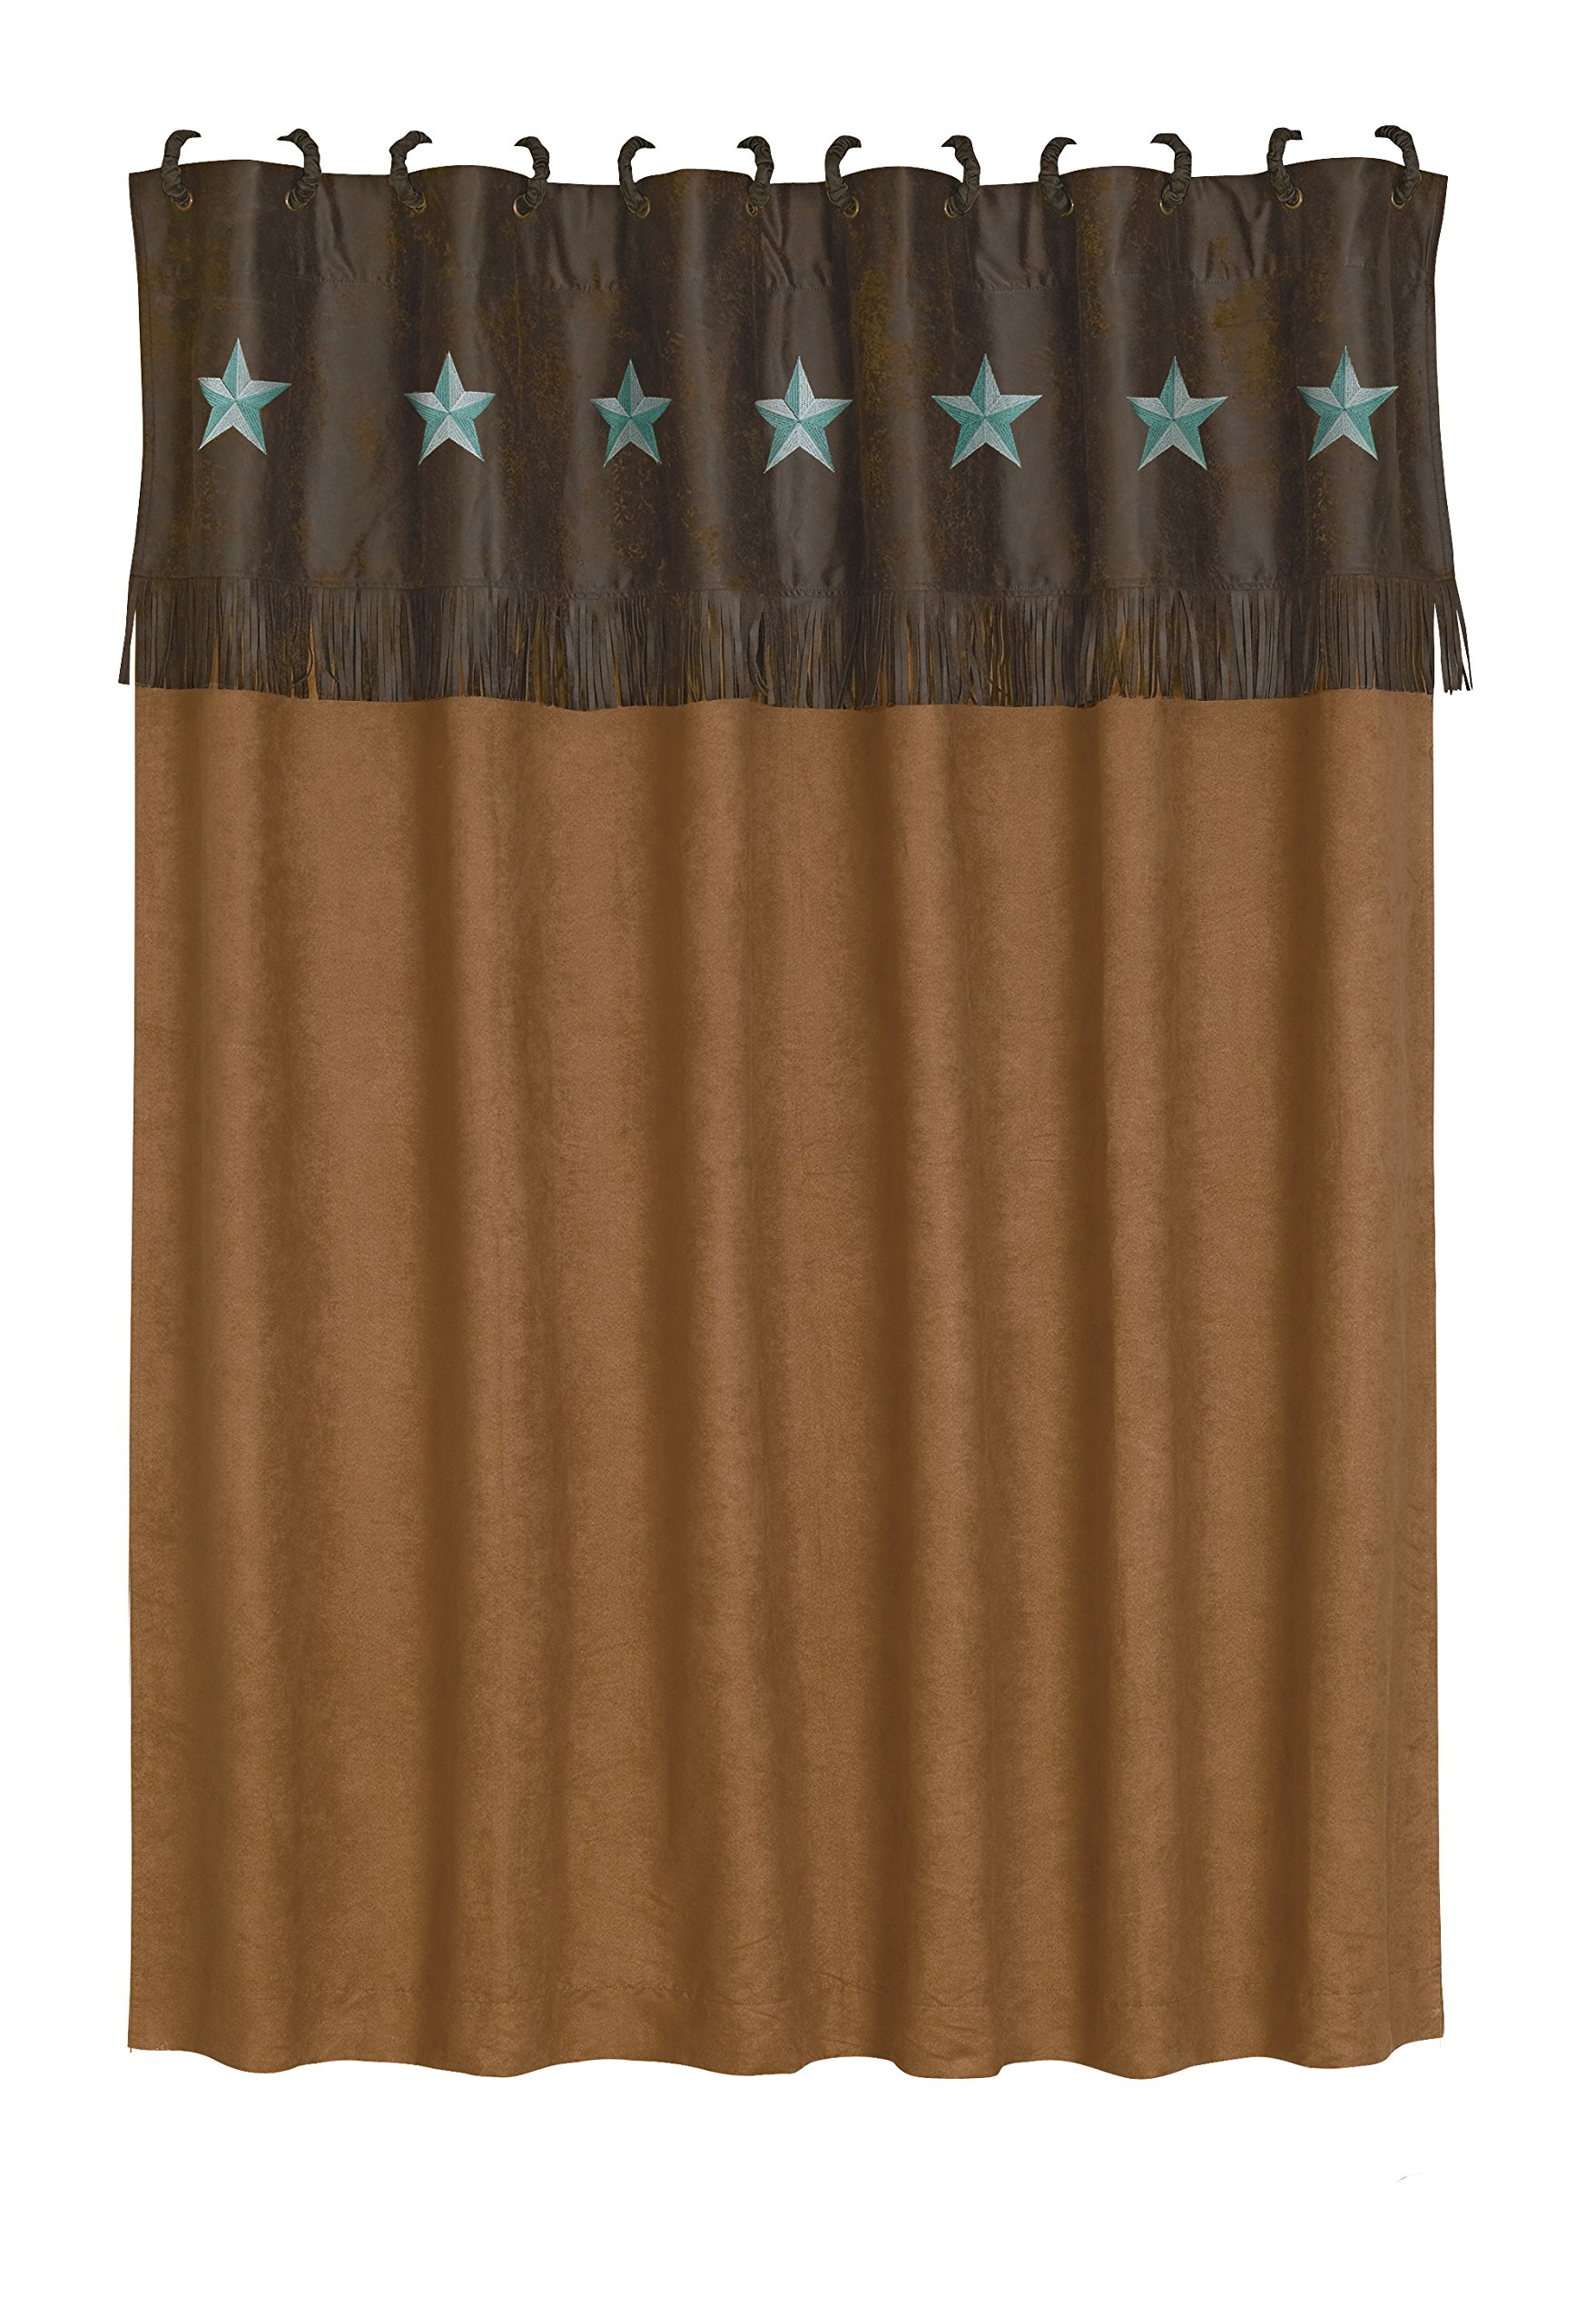 HiEnd Accents Laredo Western Shower Curtain, 72 x 72, Turquoise